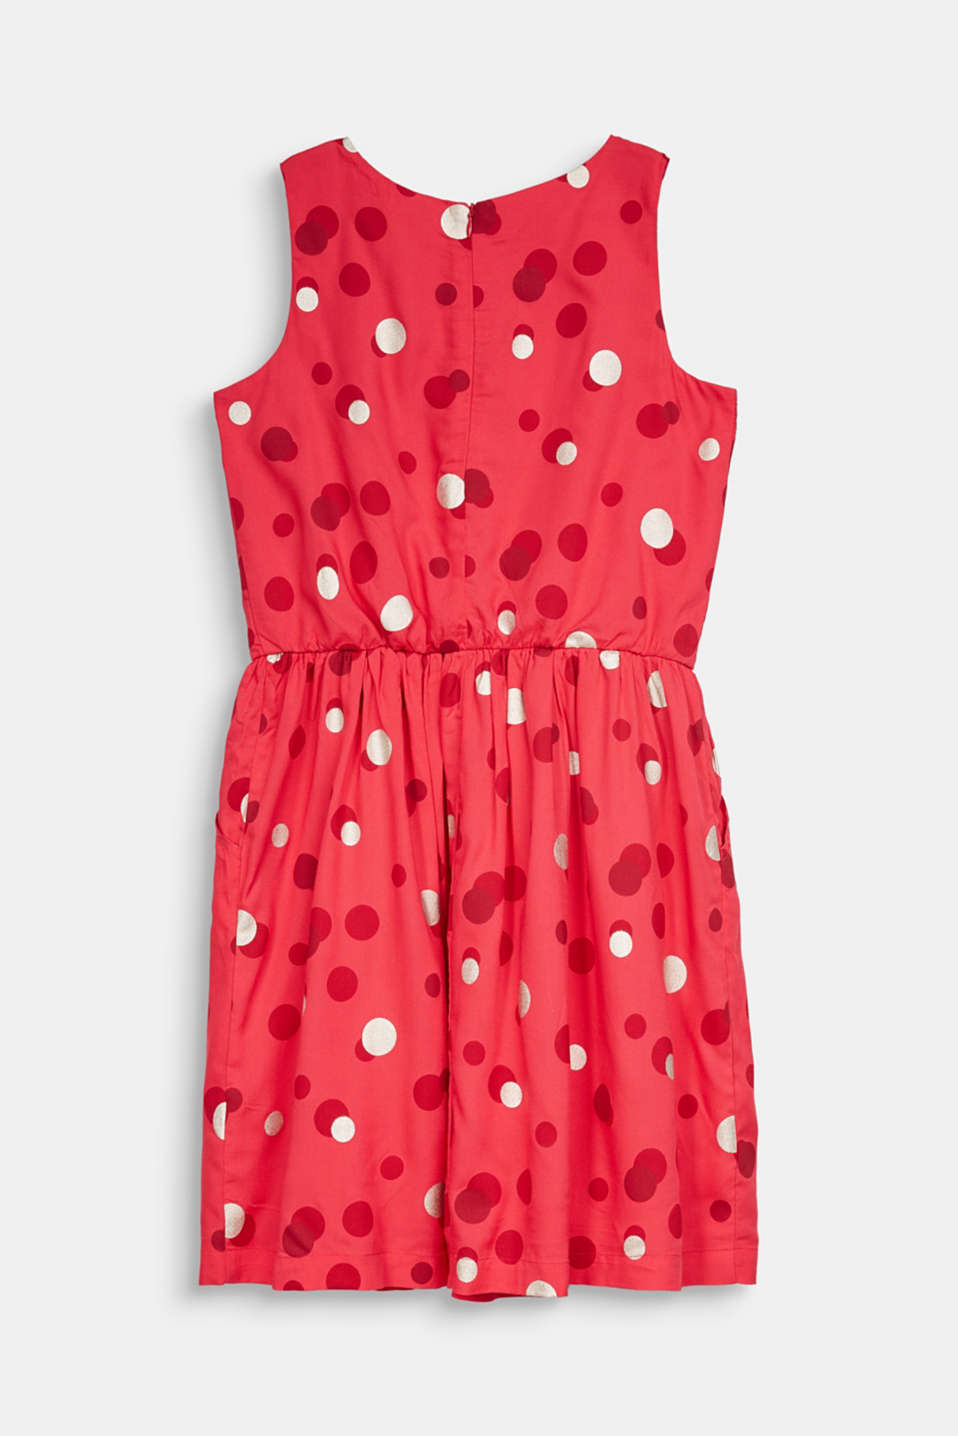 Dress with a shimmering polka dot print, LCRASPBERRY, detail image number 1